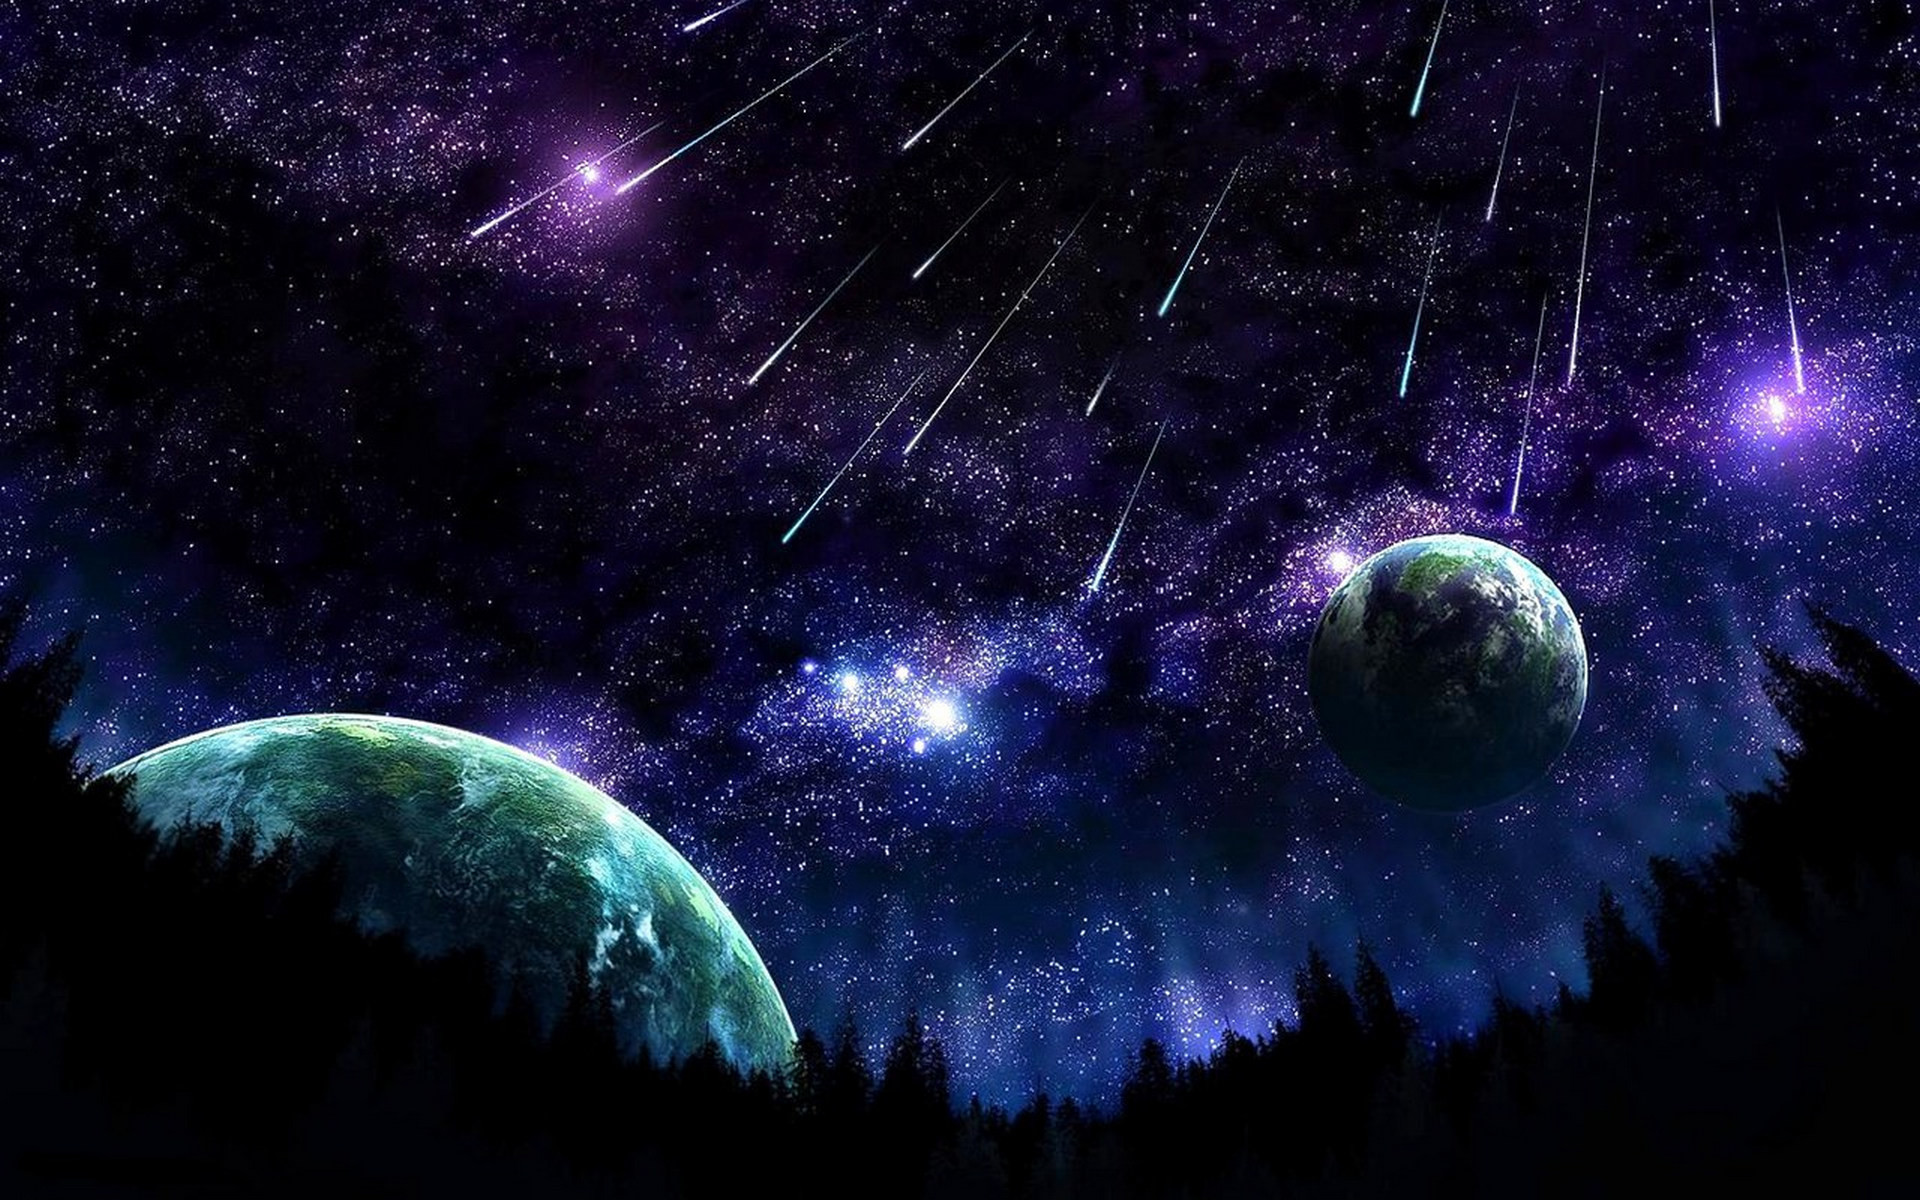 1920x1200 Free desktop wallpapers and backgrounds with meteor shower, cosmos, planet,  space, universe. Wallpapers no.